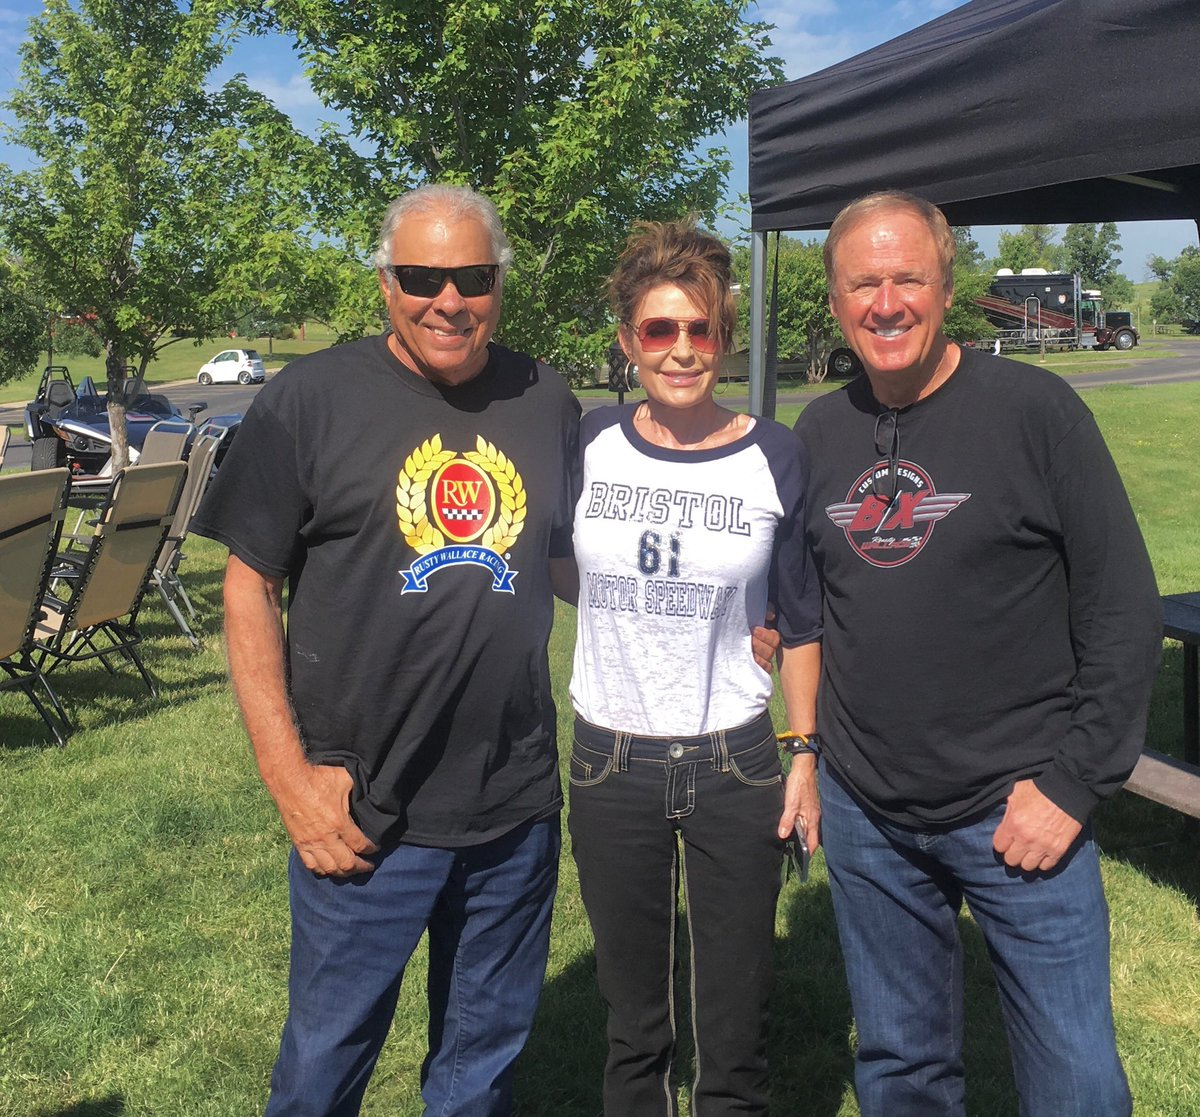 At Sturgis with amazing racing legends... @RustyWallace @DonPrudhomme and @WalkerEvansRace !! 🇺🇸🏁 Supporting a great cause, check it out:  https://t.co/RxcmcploqX https://t.co/ODNoiroGnz